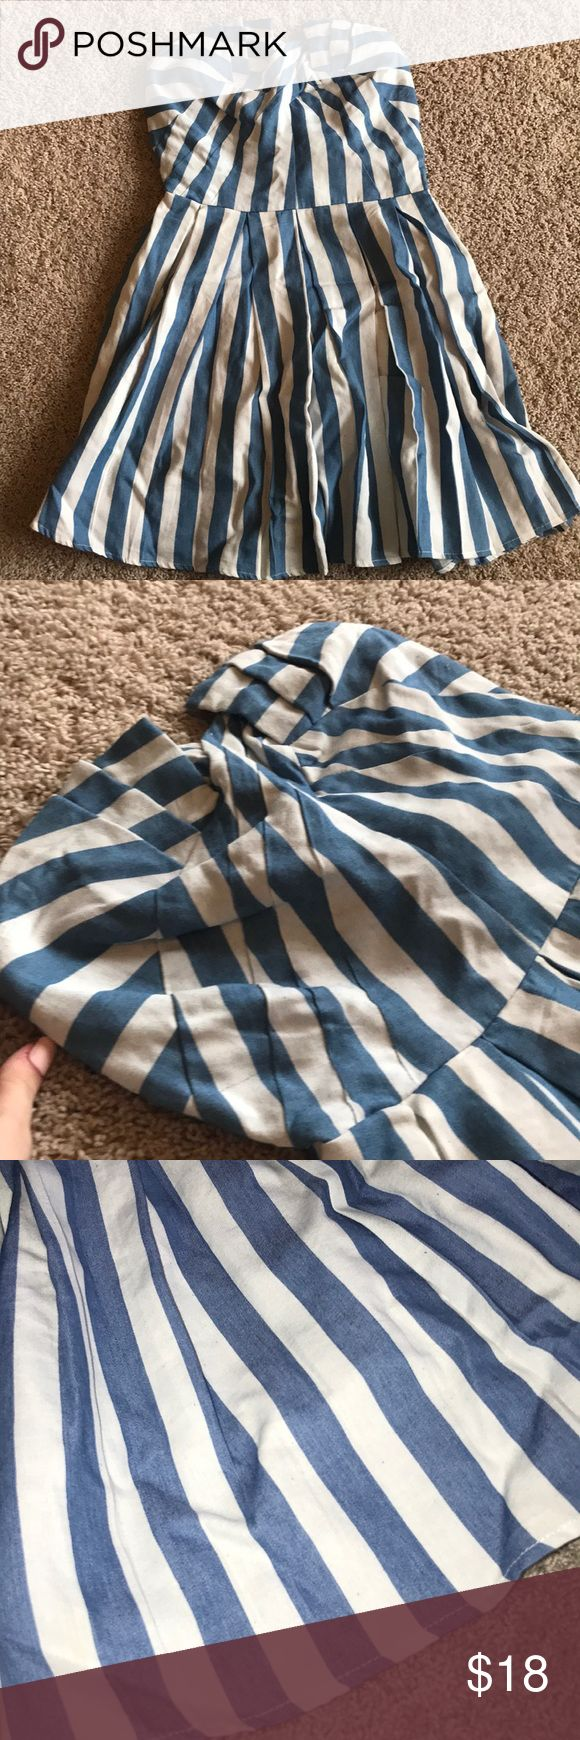 Altar'd State Strapless Dress Blue and white striped strapless dress Perfect for the beach LOVED this dress Smocked back and zipper on the side Gently worn great condition Altar'd State Dresses Strapless